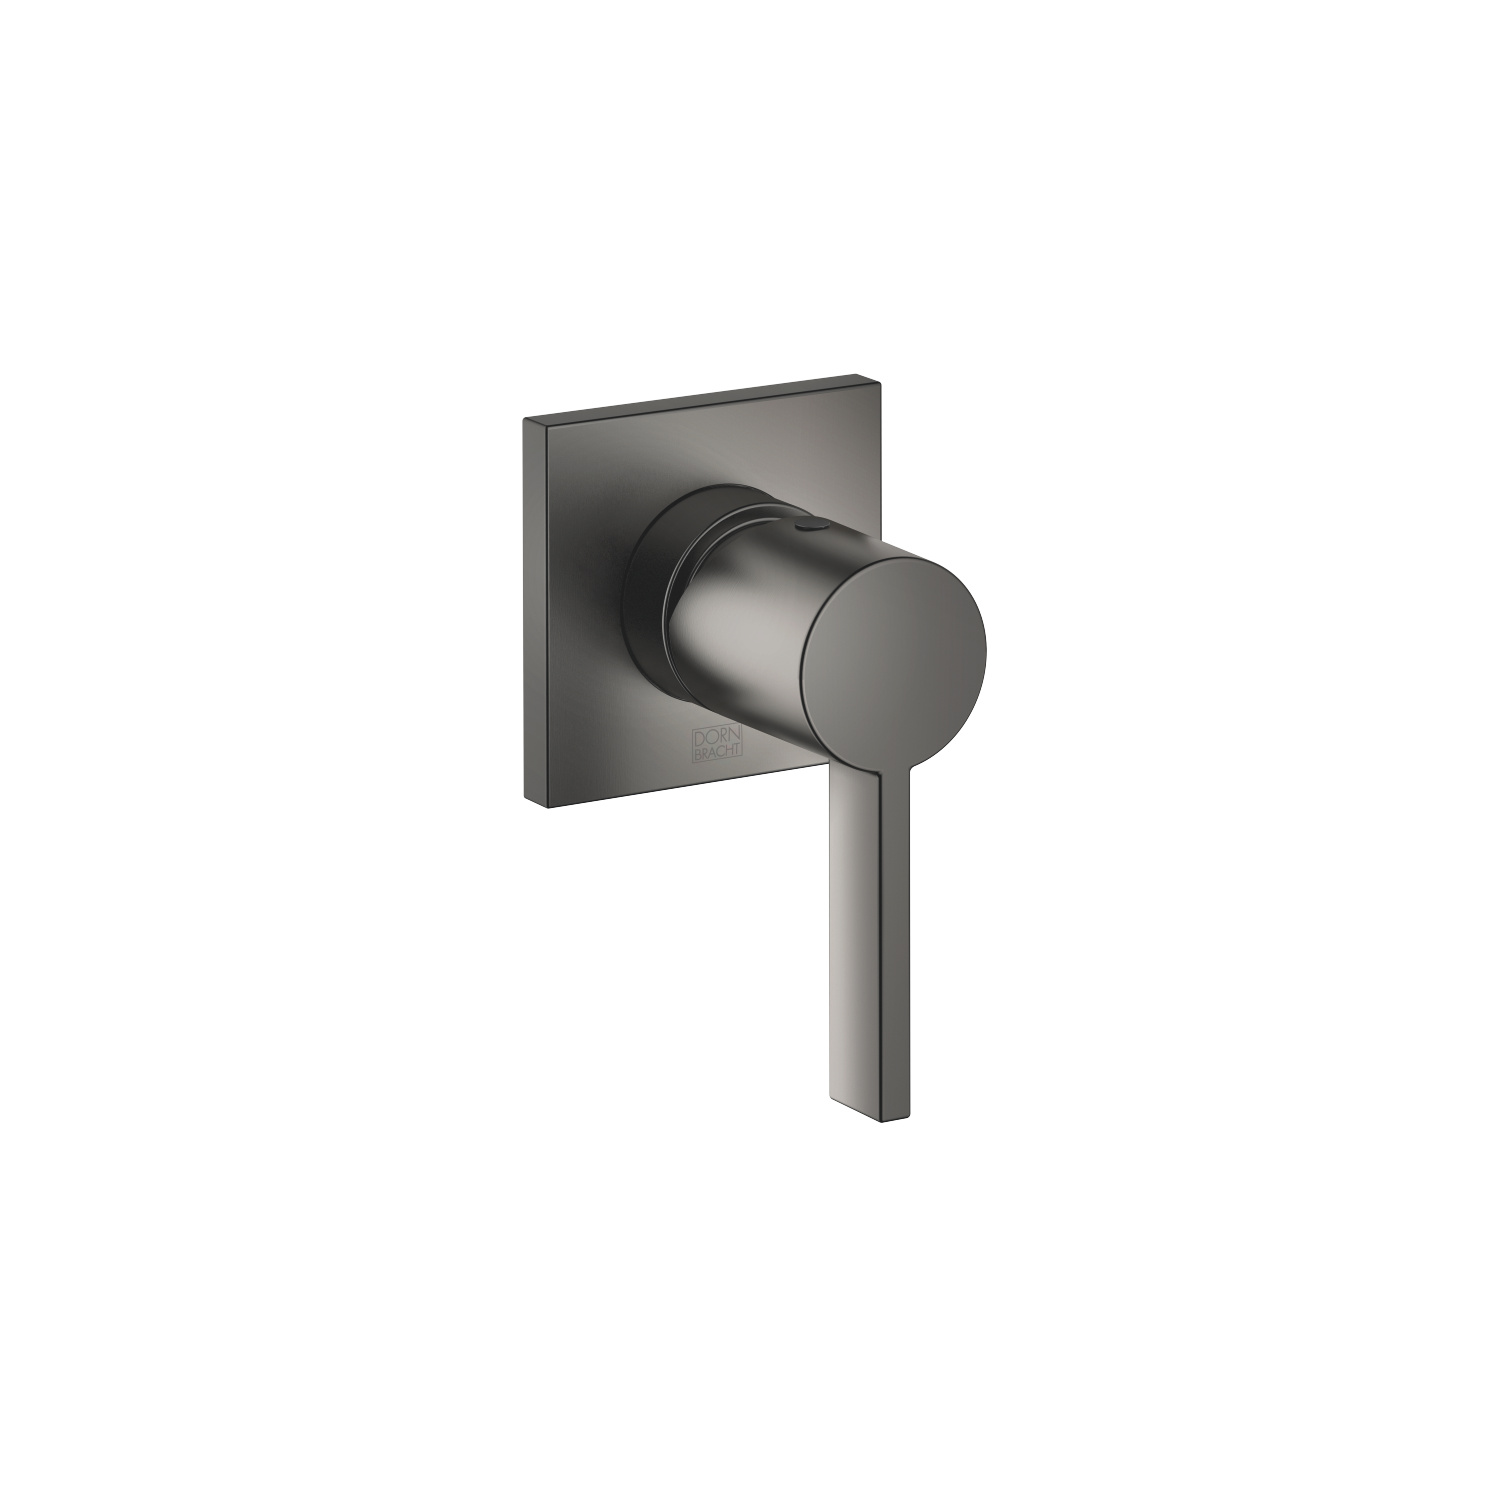 Concealed single-lever mixer with cover plate - Dark Platinum matt